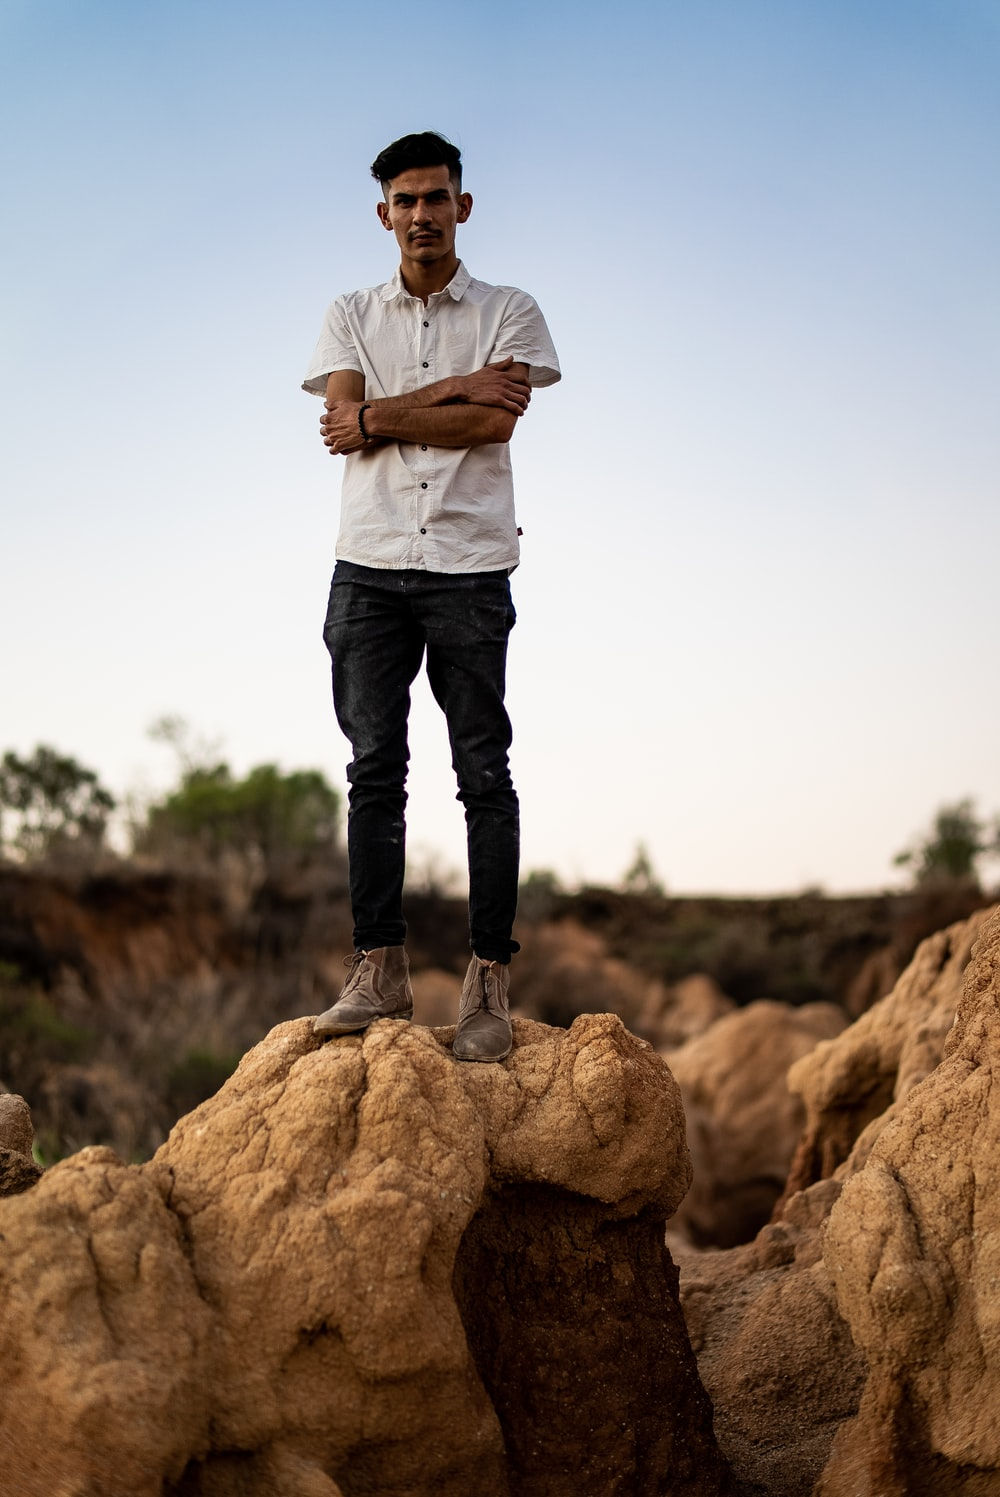 man in white dress shirt and black pants standing on brown rock during daytime